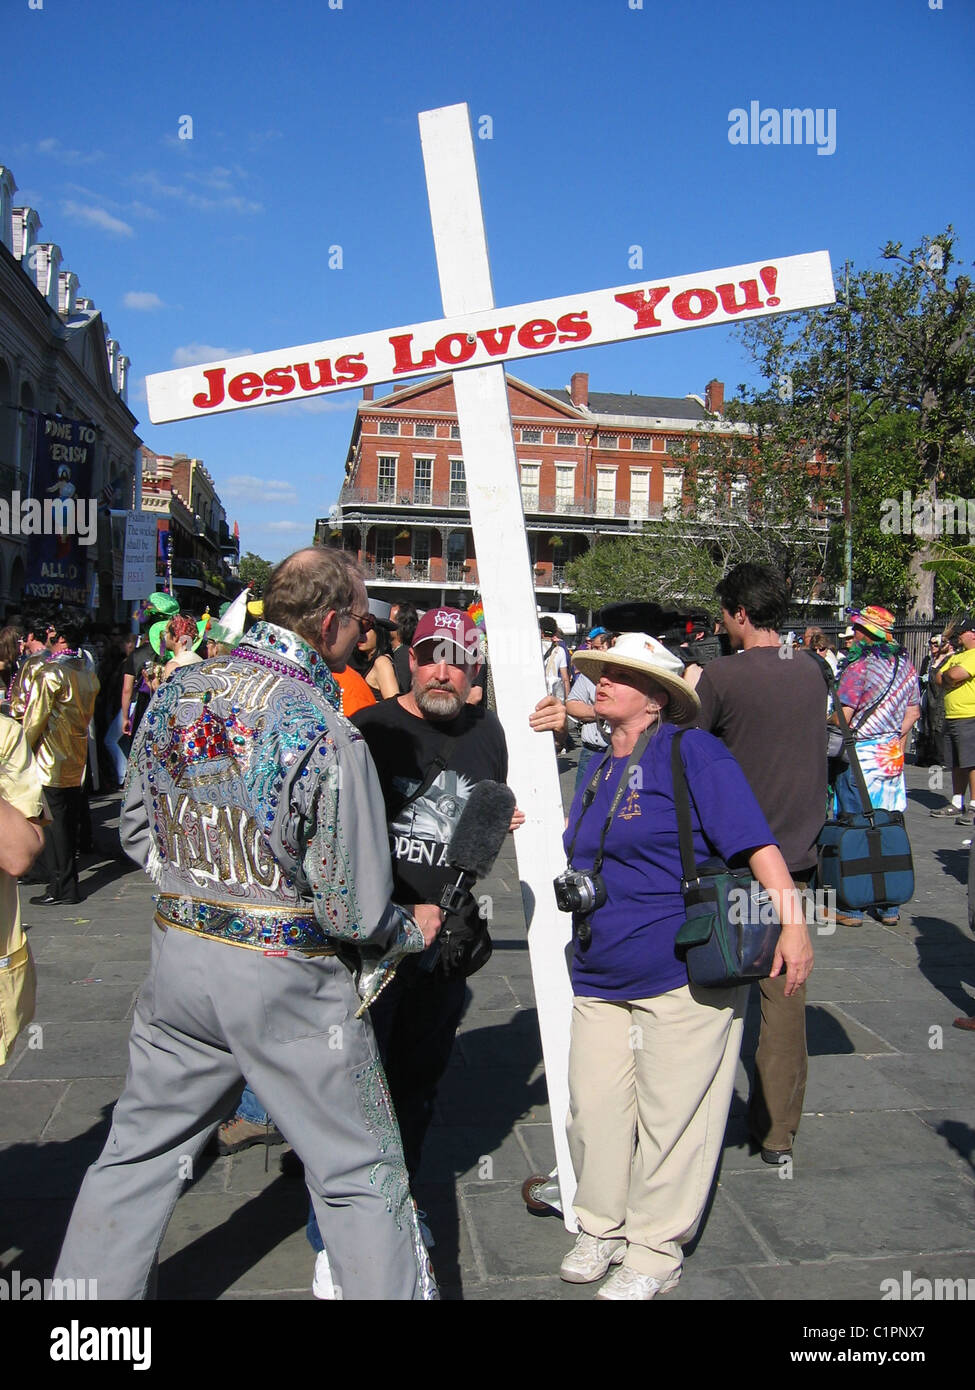 Jesus Loves You. At the Mardi Gras festival, New Orleans, adult religious protestors interviewed by a man dressed - Stock Image